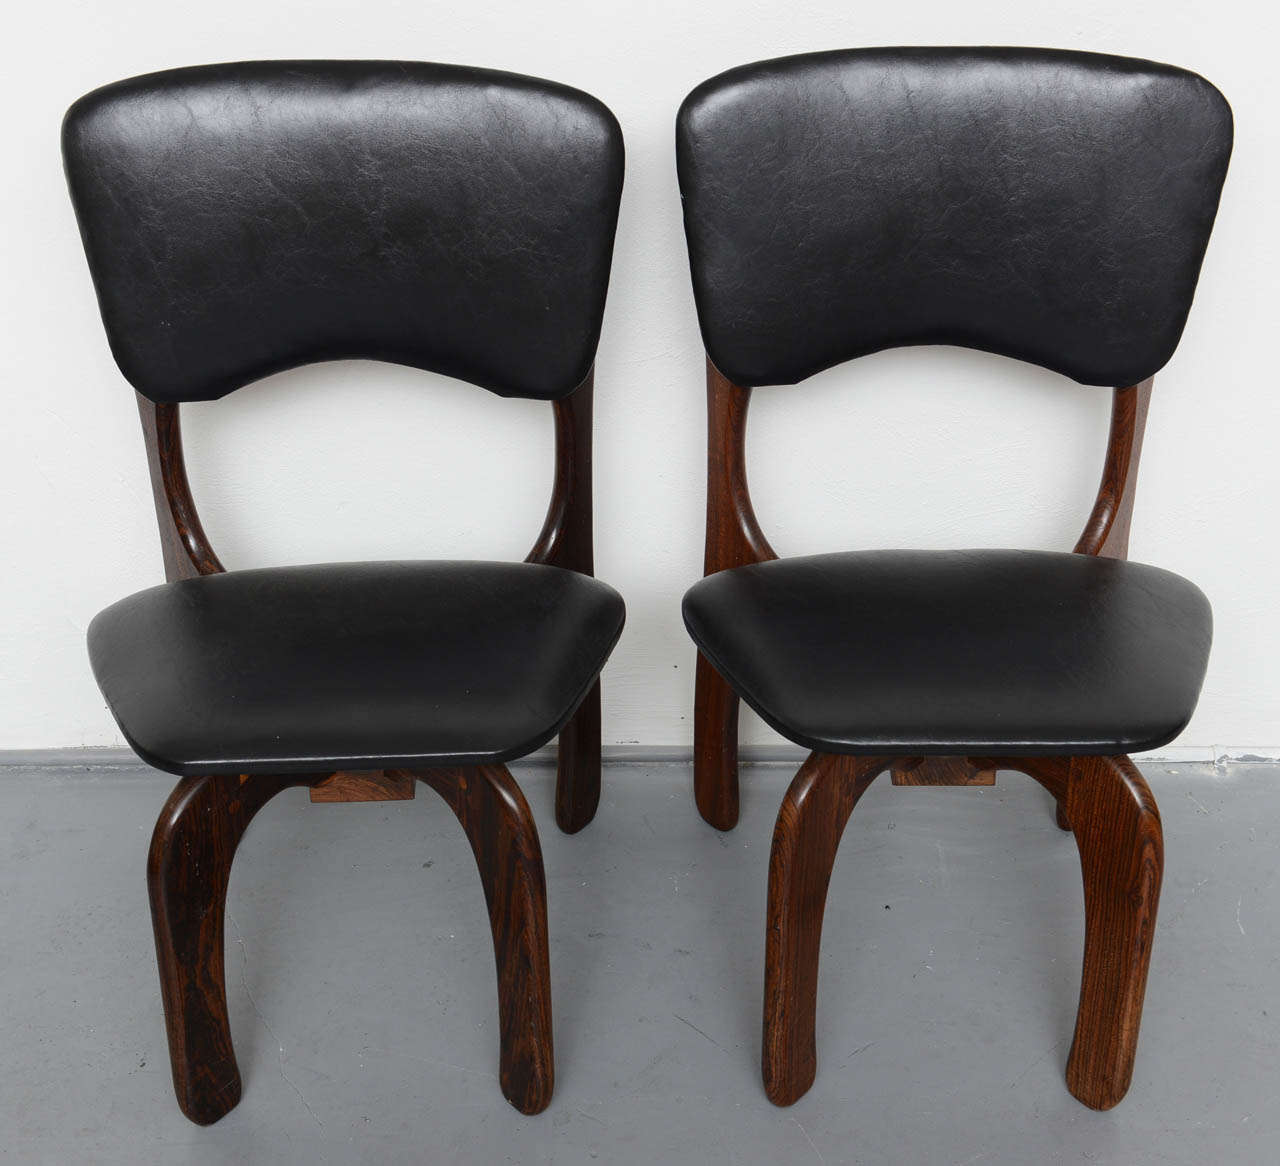 Mid-Century Modern 1970s Rosewood Chairs by Don Shoemaker, Mexico For Sale